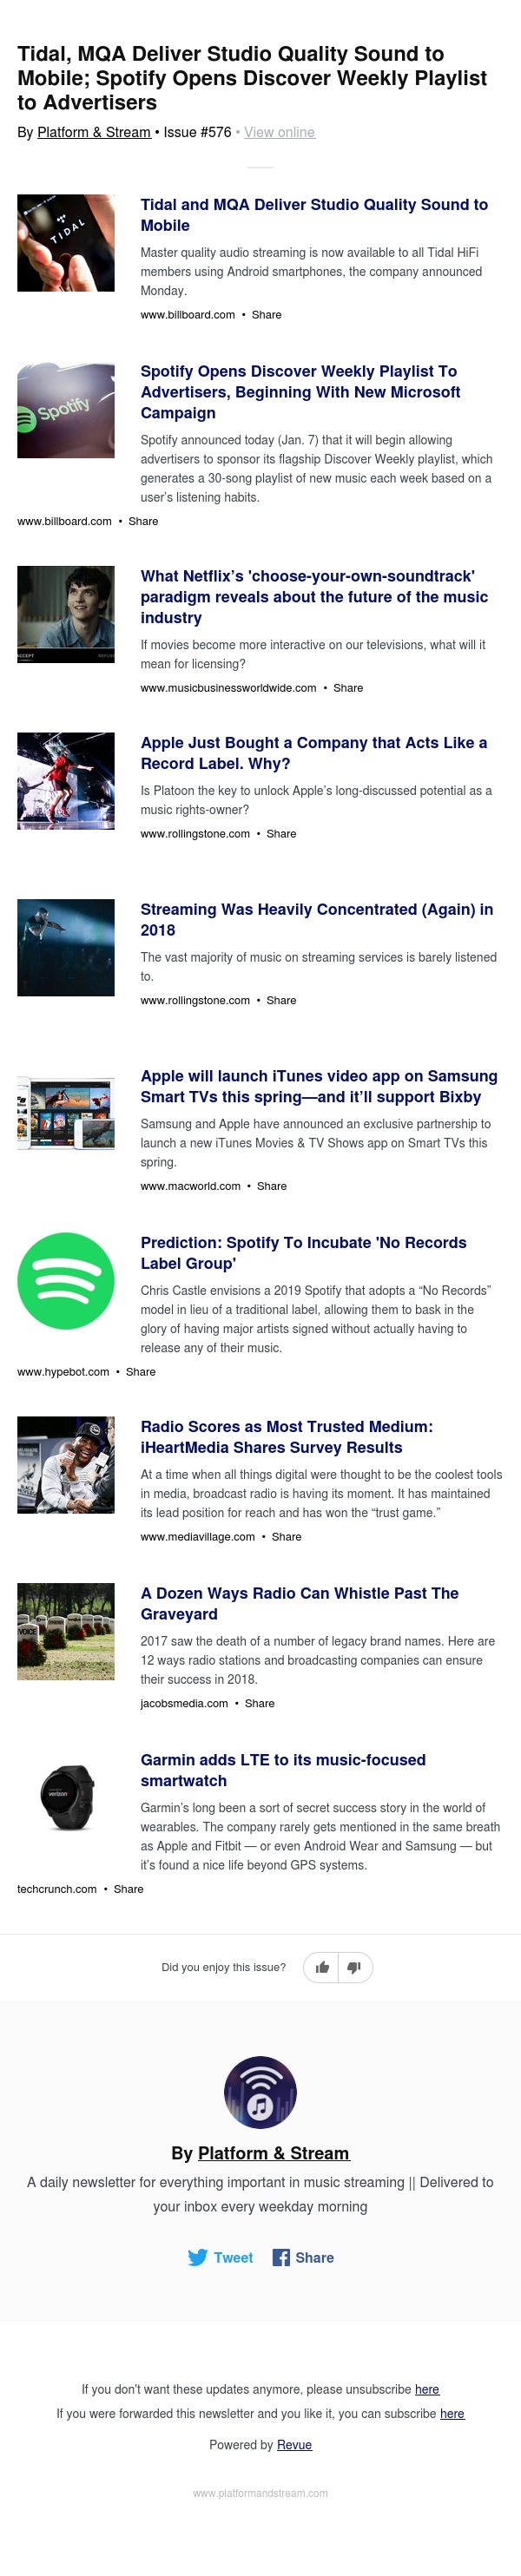 Tidal, MQA Deliver Studio Quality Sound to Mobile; Spotify Opens Discover Weekly Playlist to Advertisers